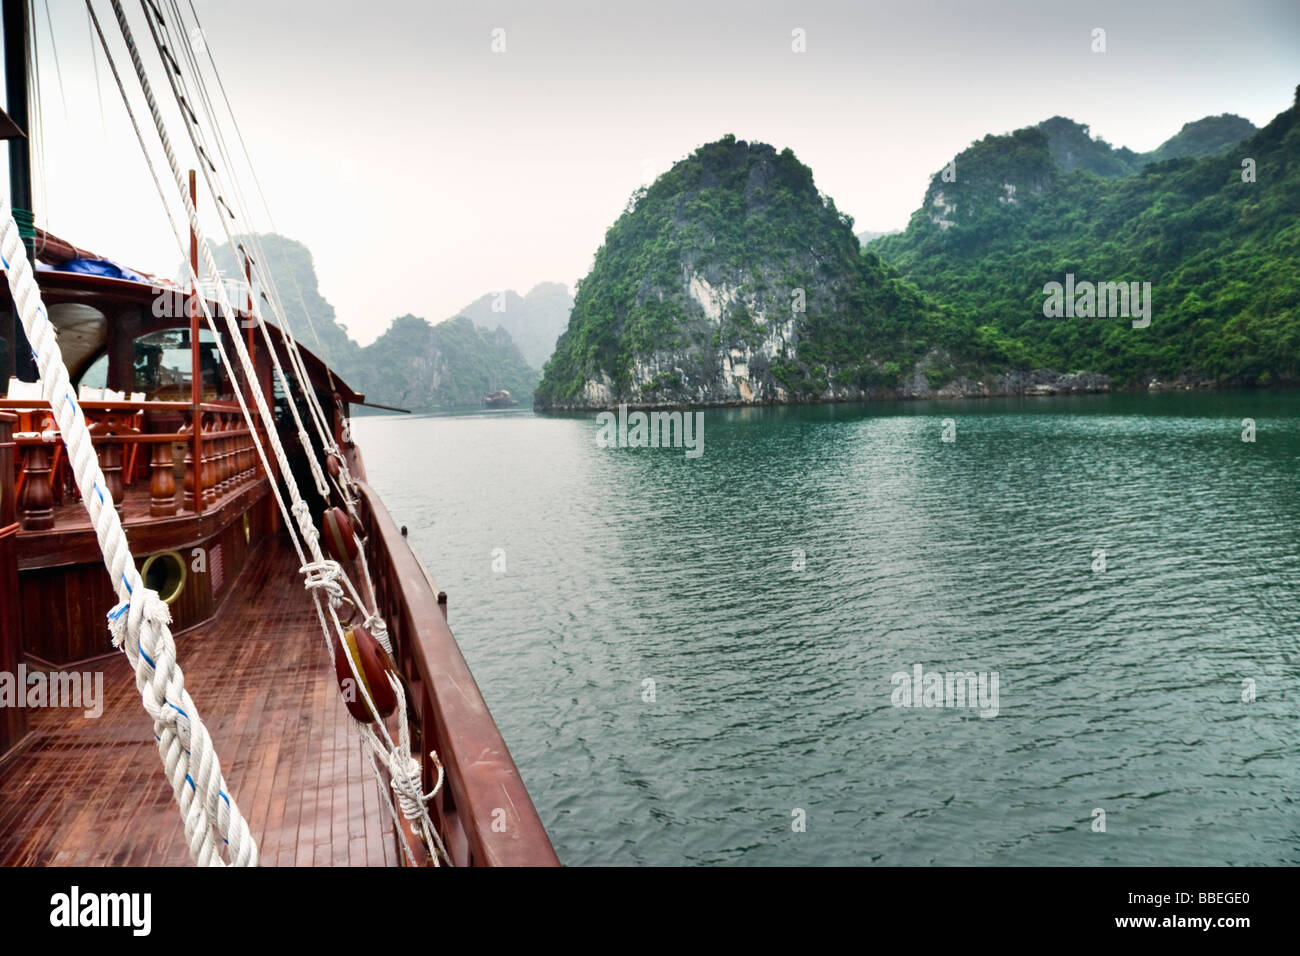 Boat, Gulf of Tonkin, Halong Bay, Quang Ninh Province, Vietnam Stock Photo